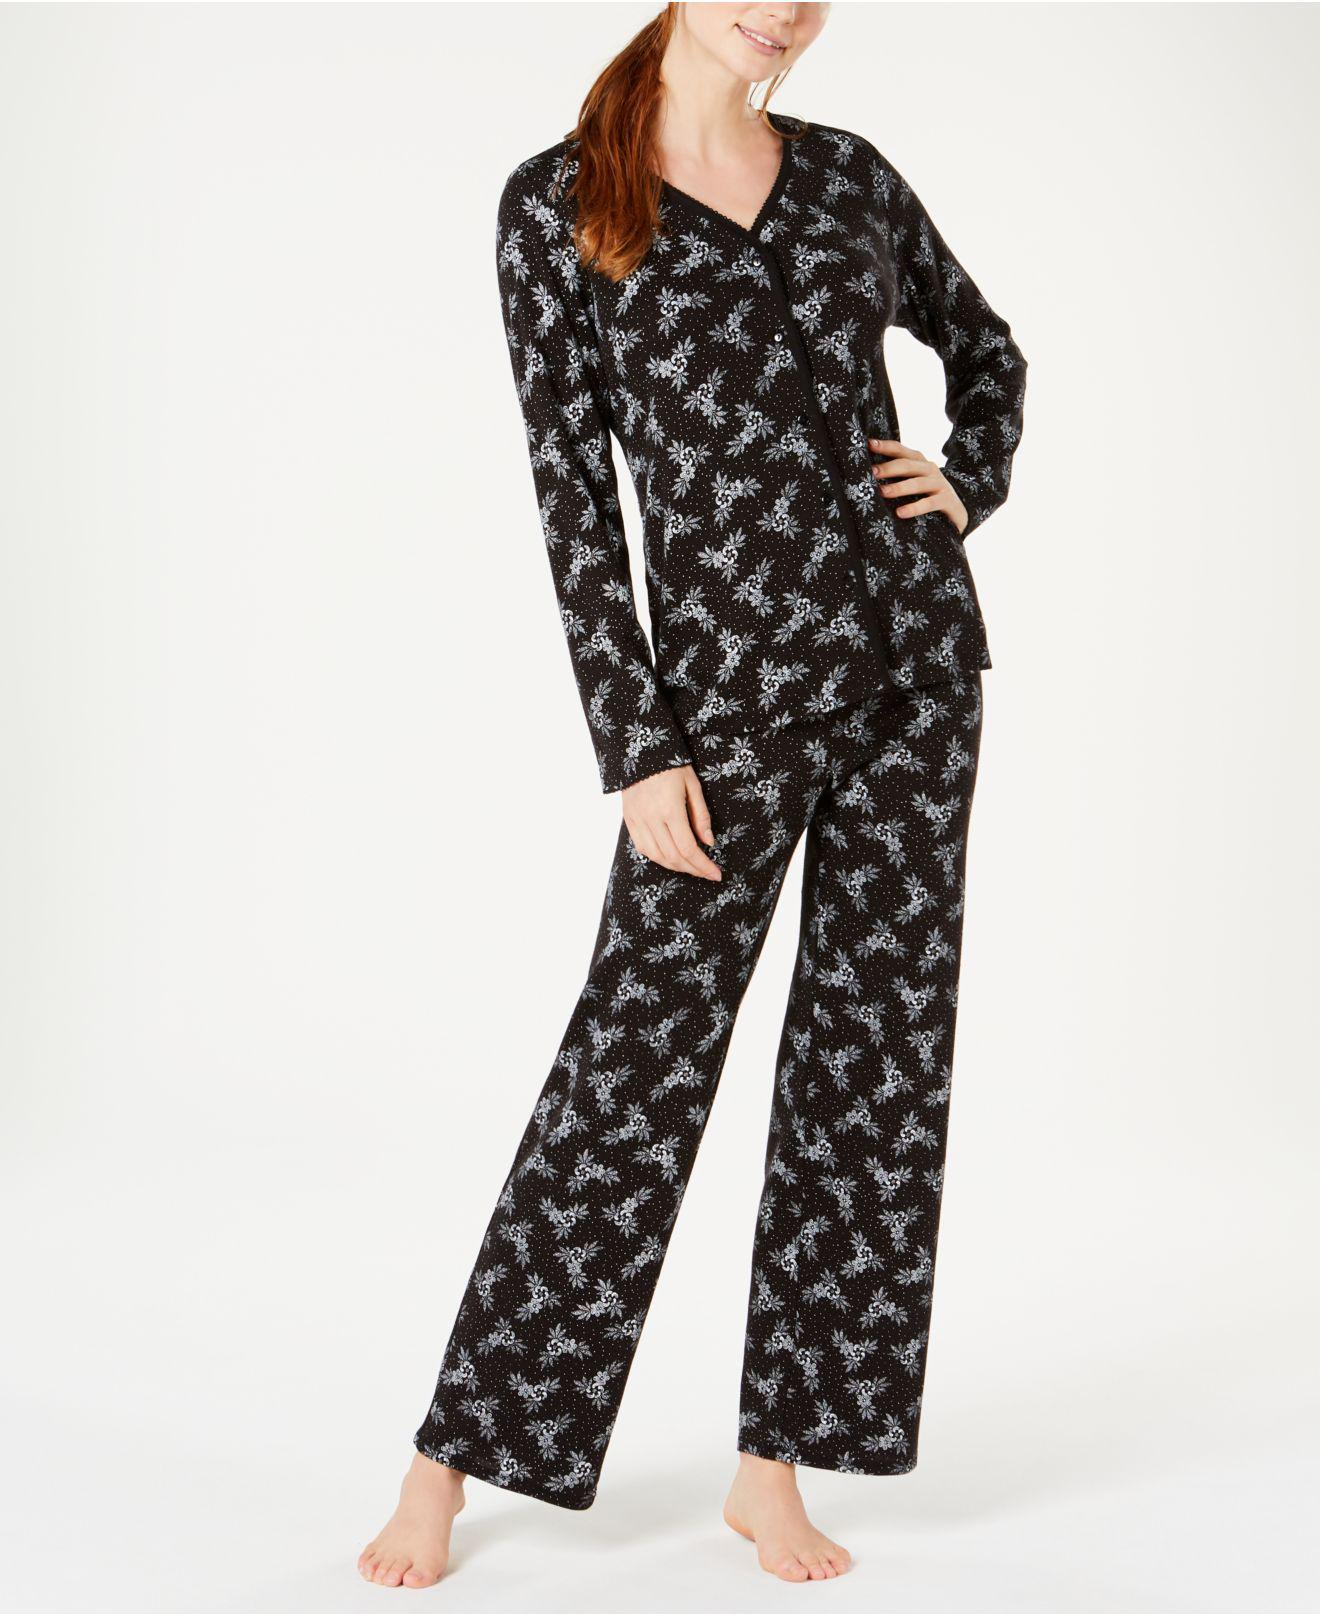 Charter Club. Women s Black Cotton Long Sleeve Button Front Pajama Set ... d56db8654